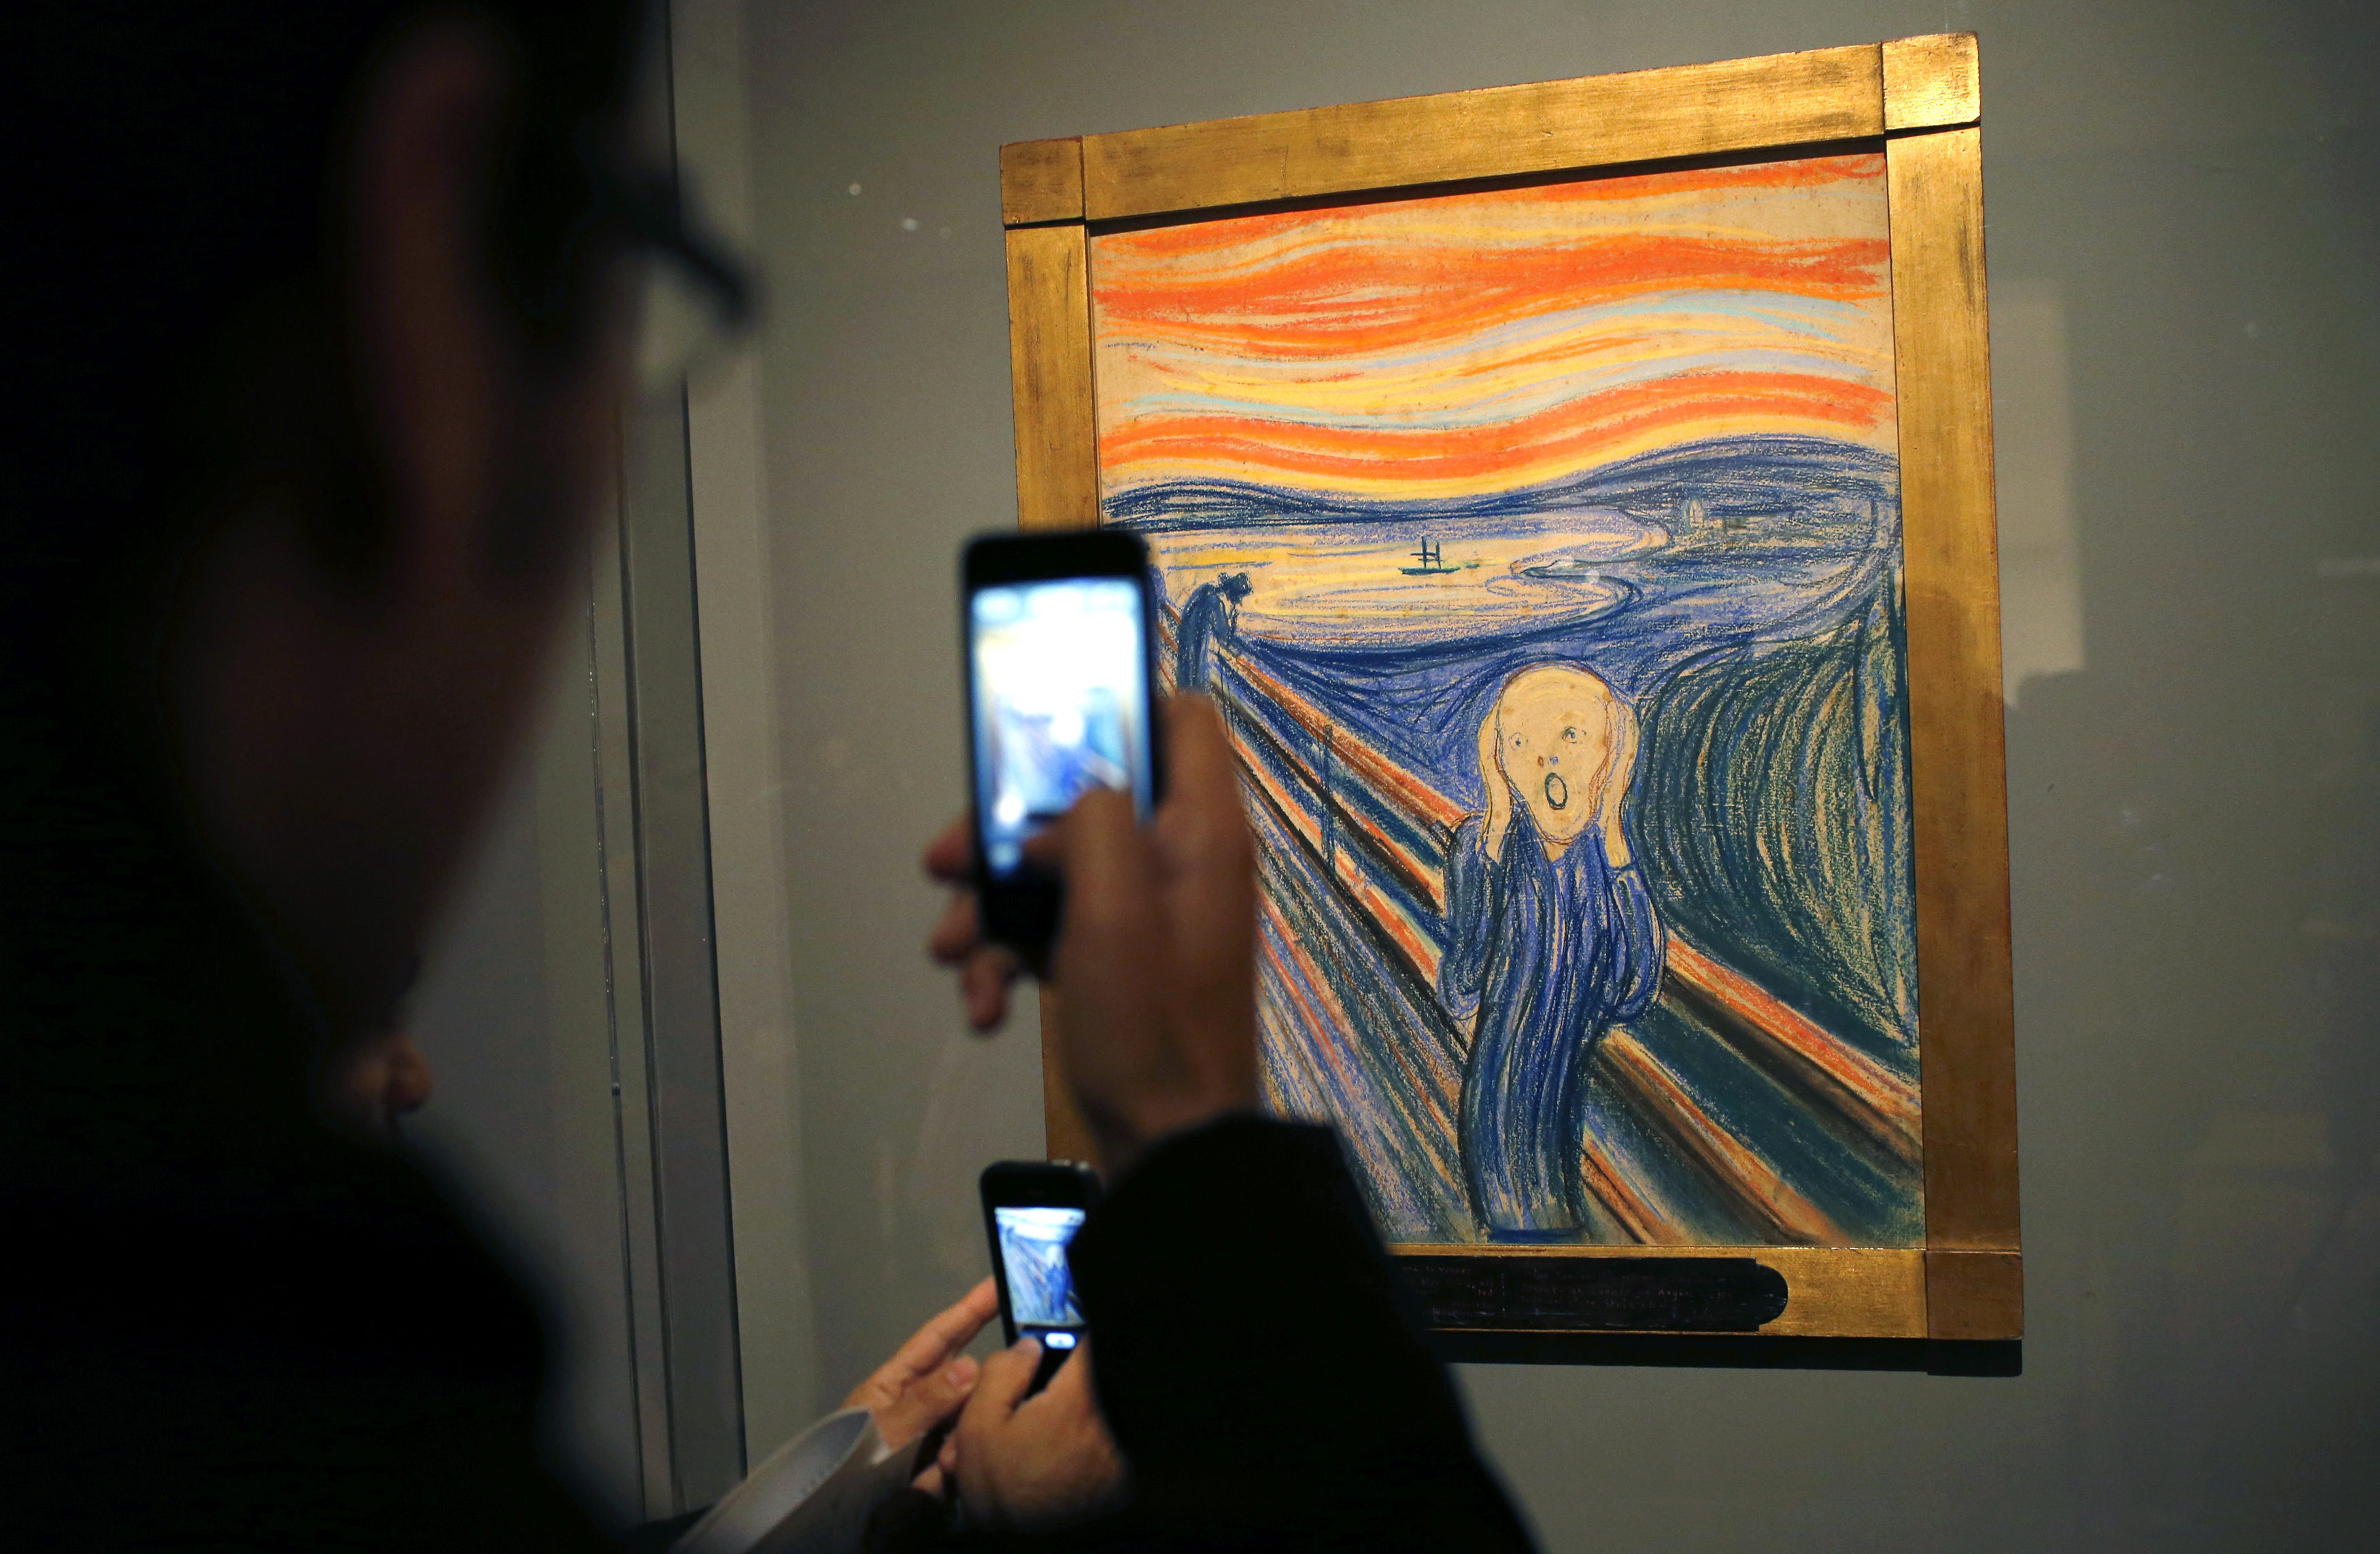 People use camera phones to photograph Edvard Munch's iconic